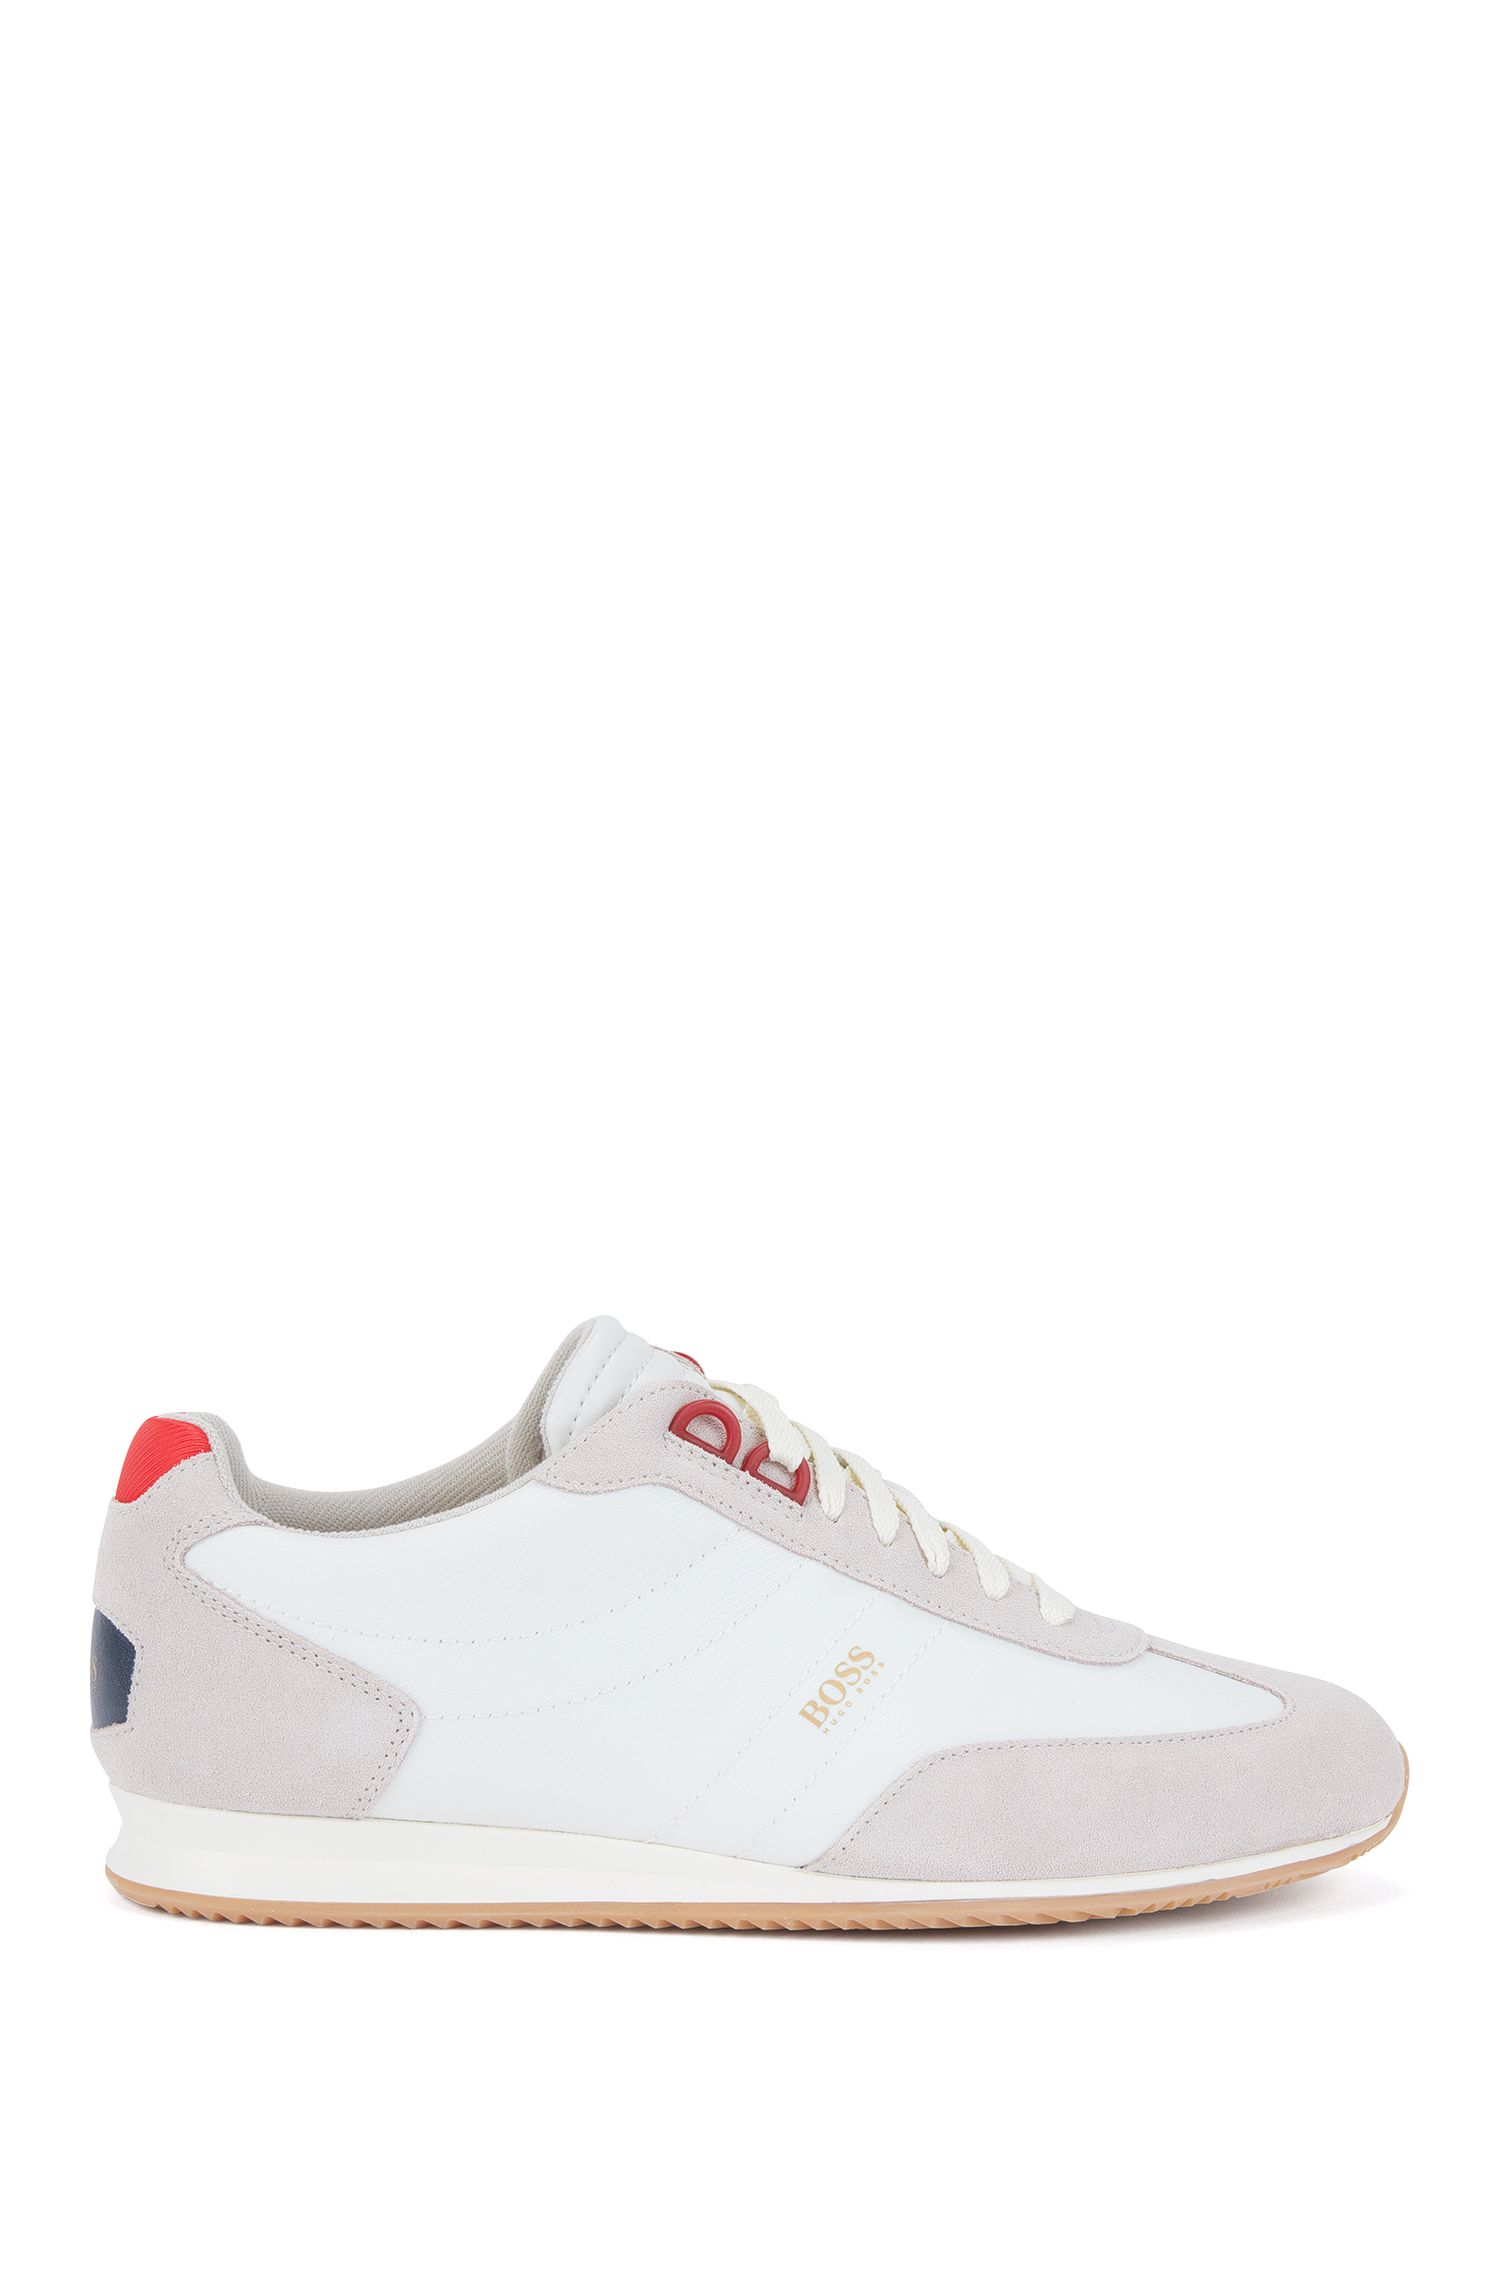 Low-top lace-up trainers in nylon with suede overlays